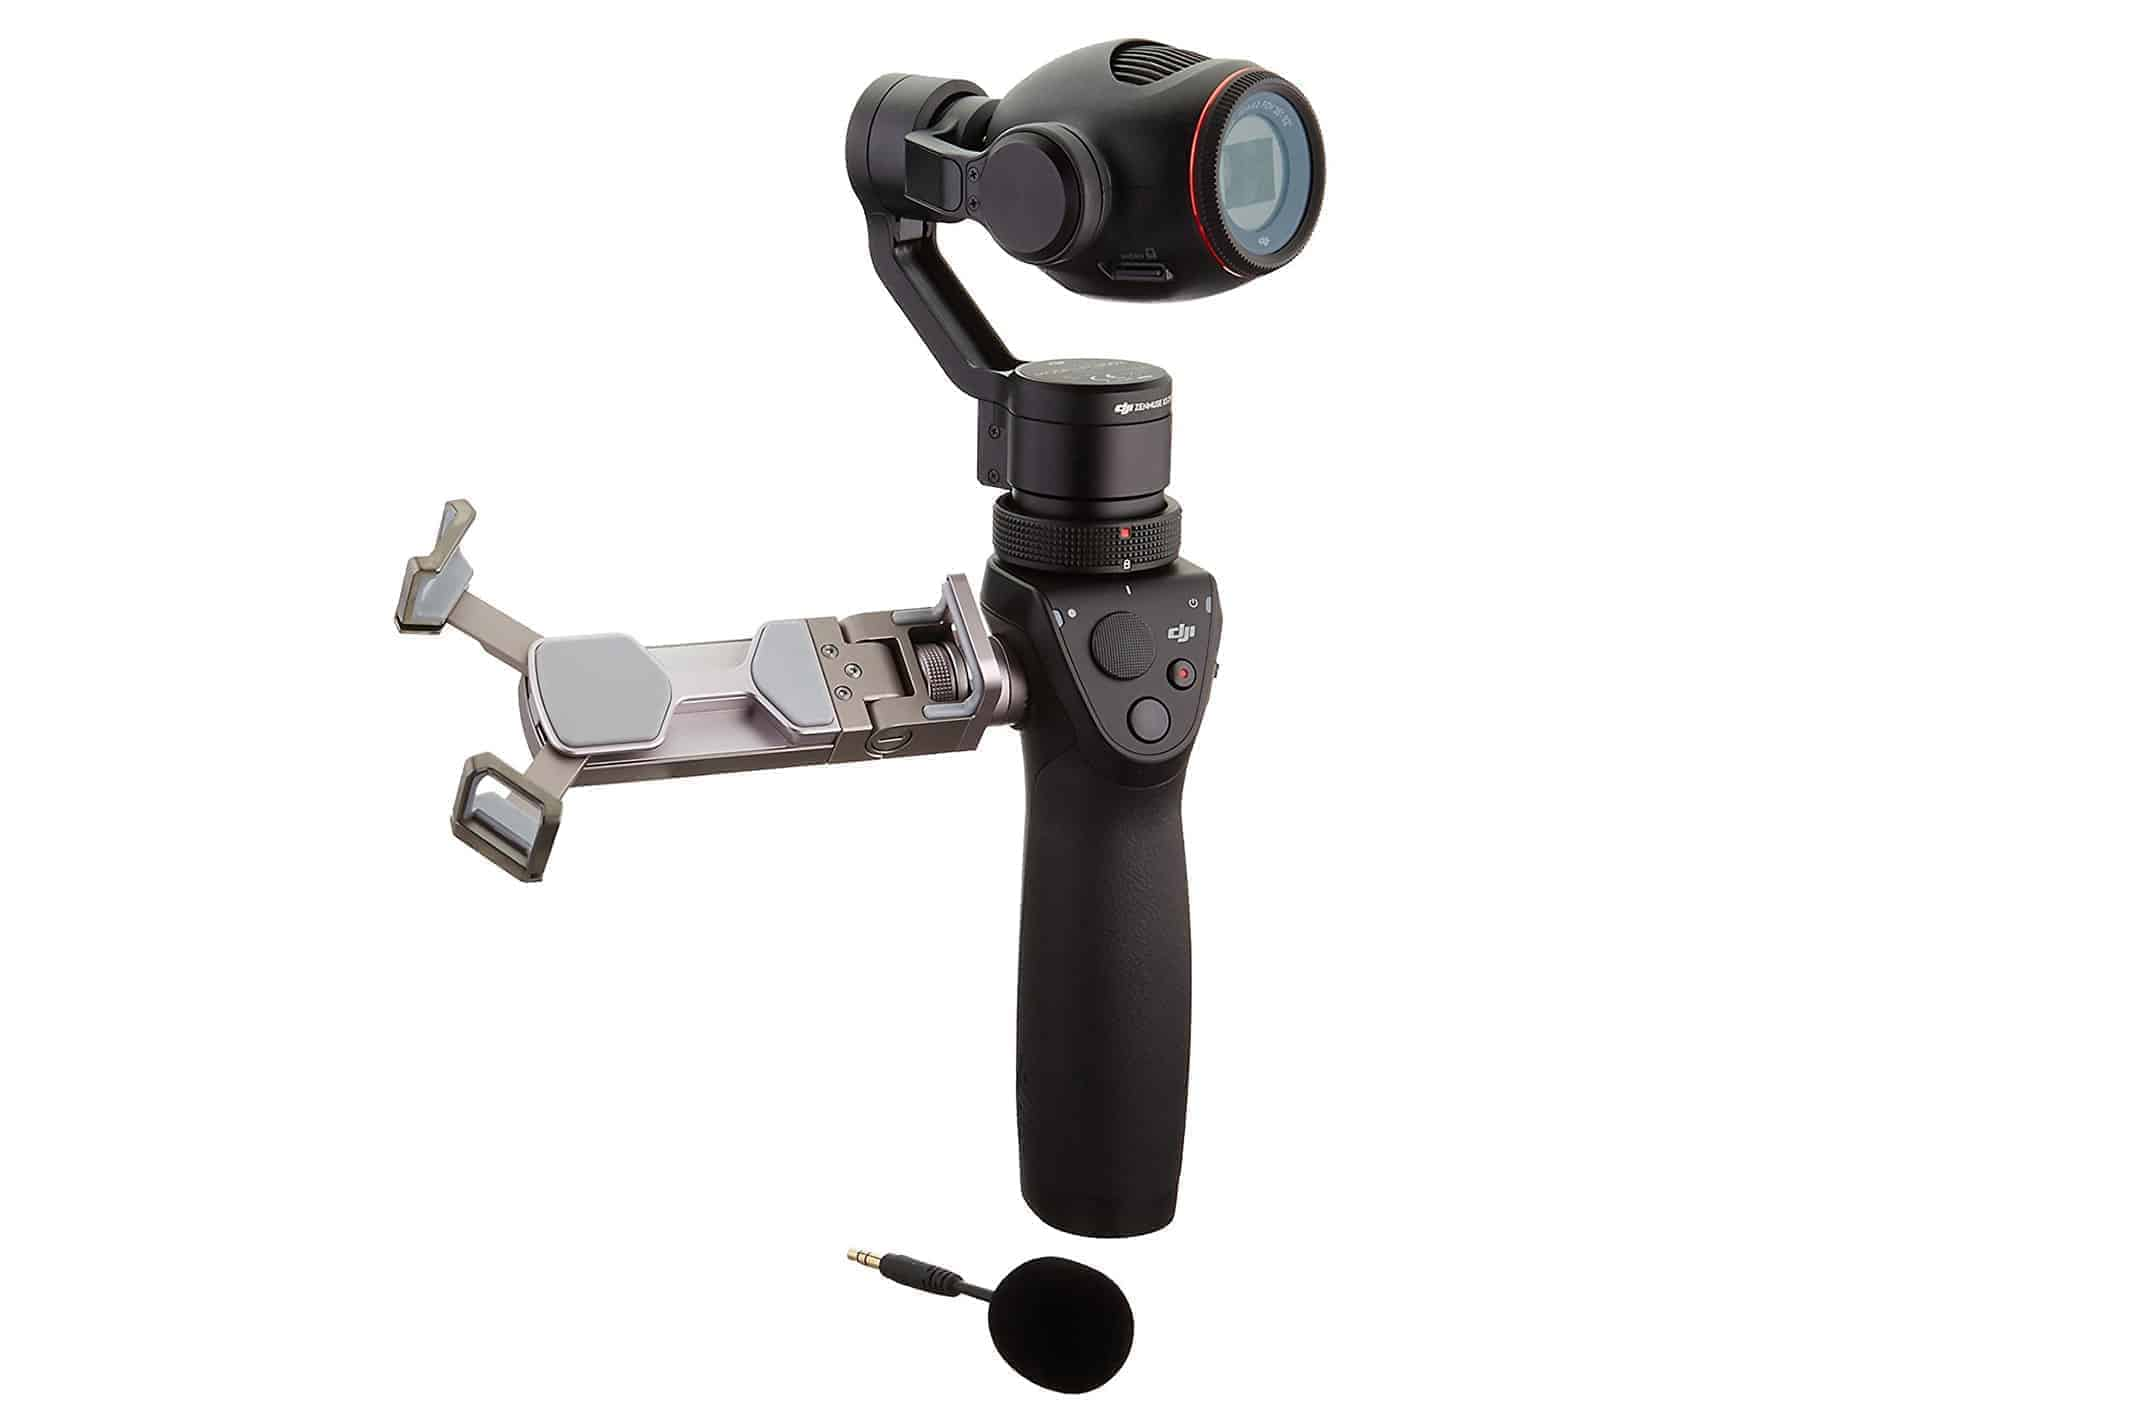 DJI Osmo + action cam